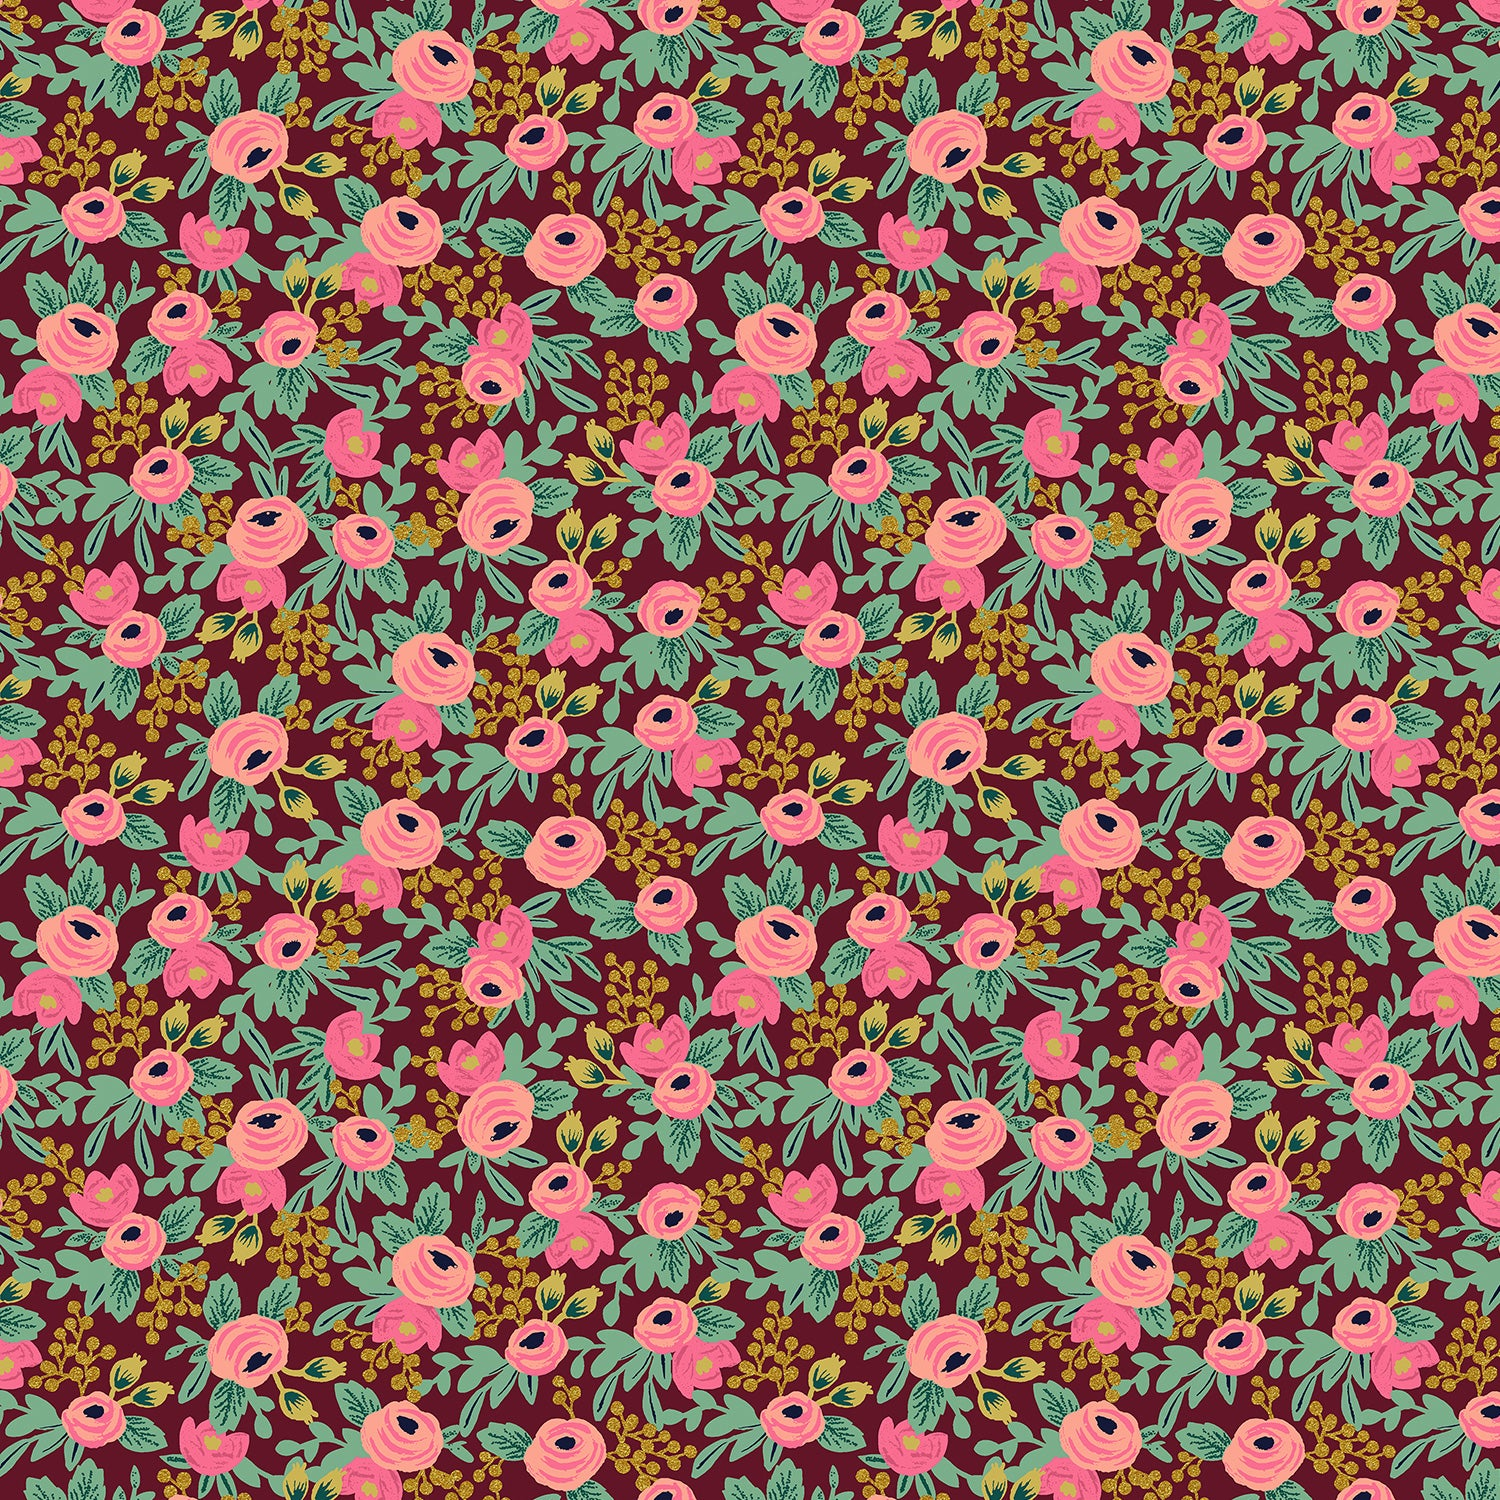 Manufacturer: Cotton and Steel Designer: Rifle Paper Co. Collection: Garden Party Print Name: Rosa in Burgundy Metallic Material: 100% Cotton  Weight: Quilting  SKU: RP305-BU5M Width: 44 inches